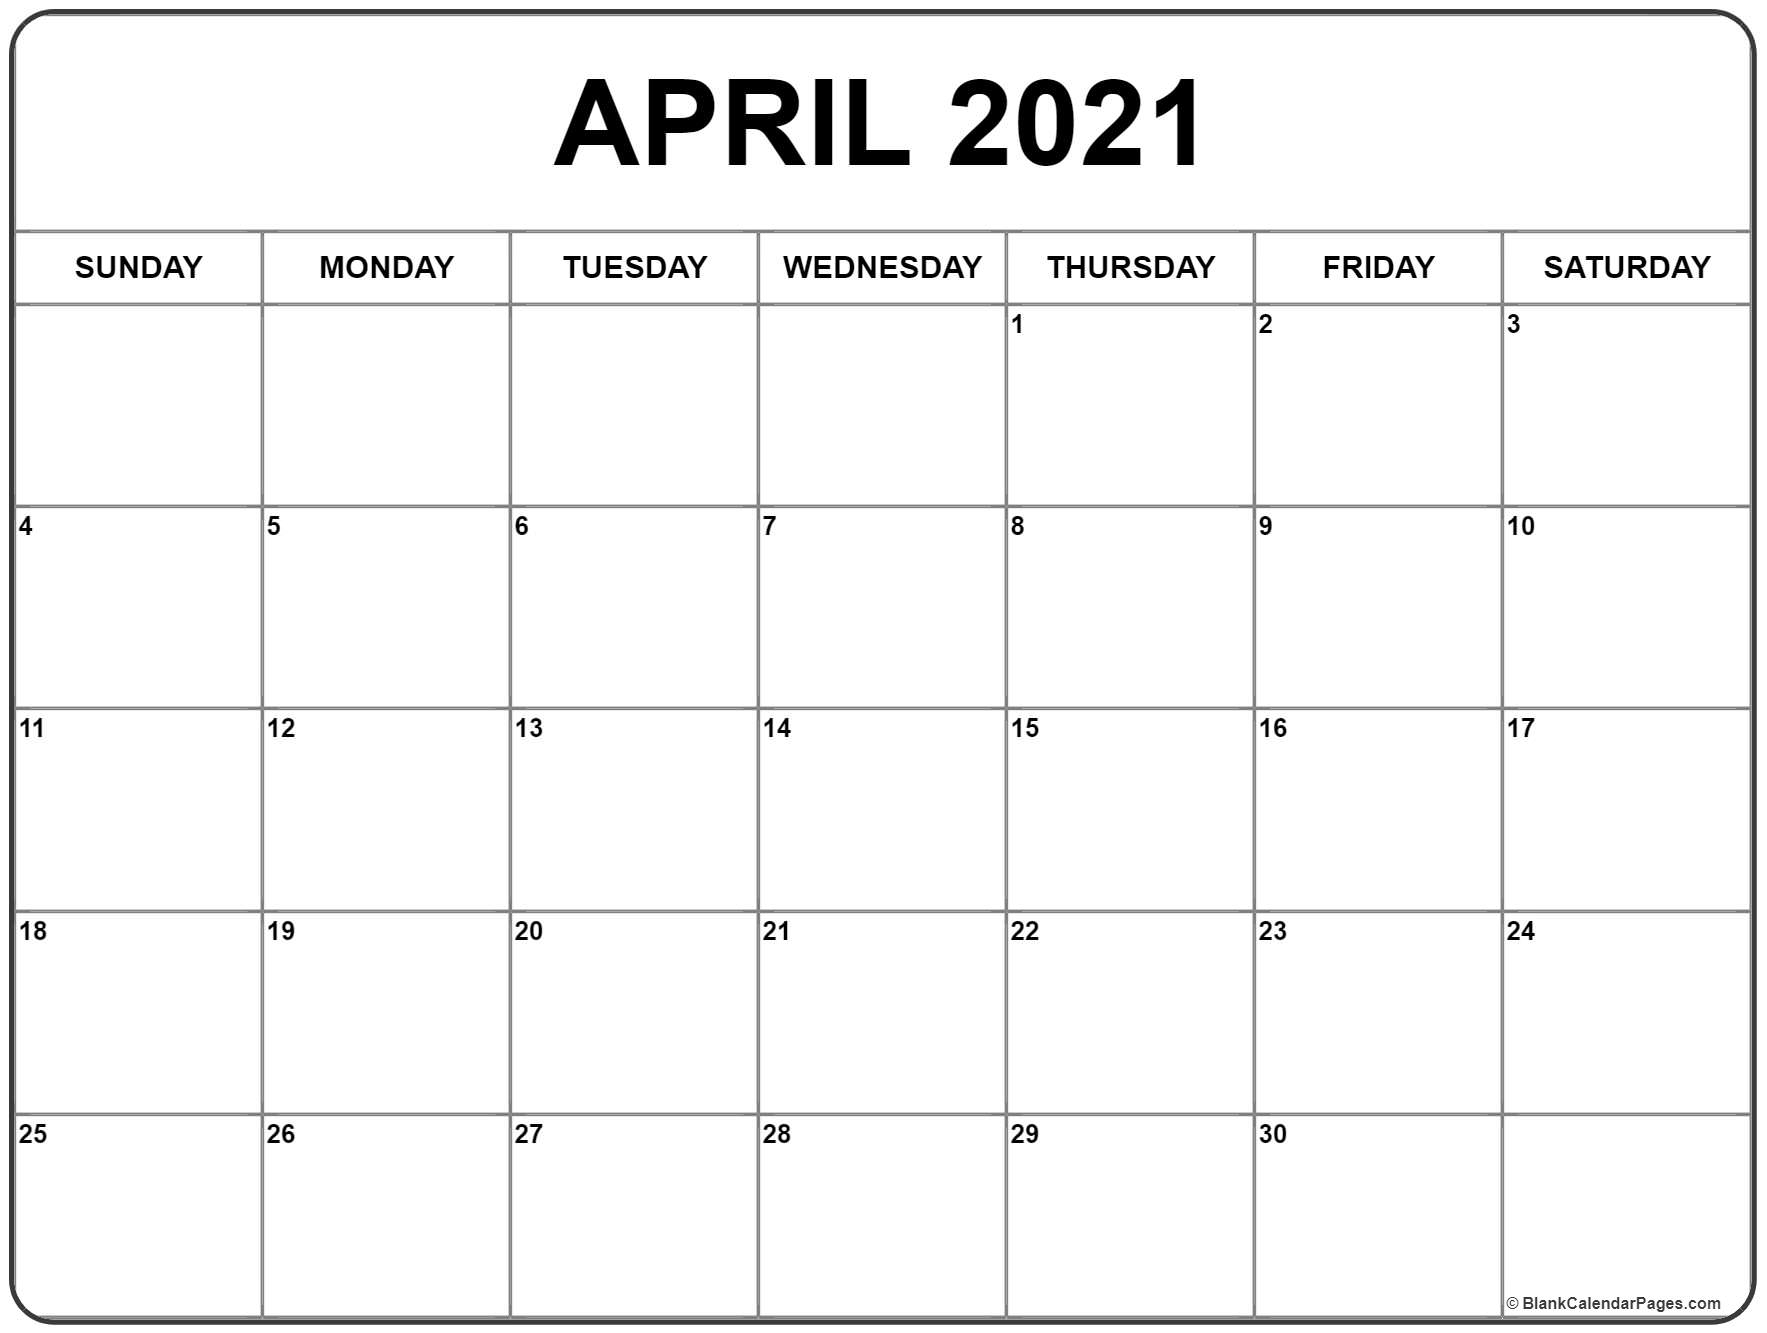 2021 Monthly Calendar With Holidays April